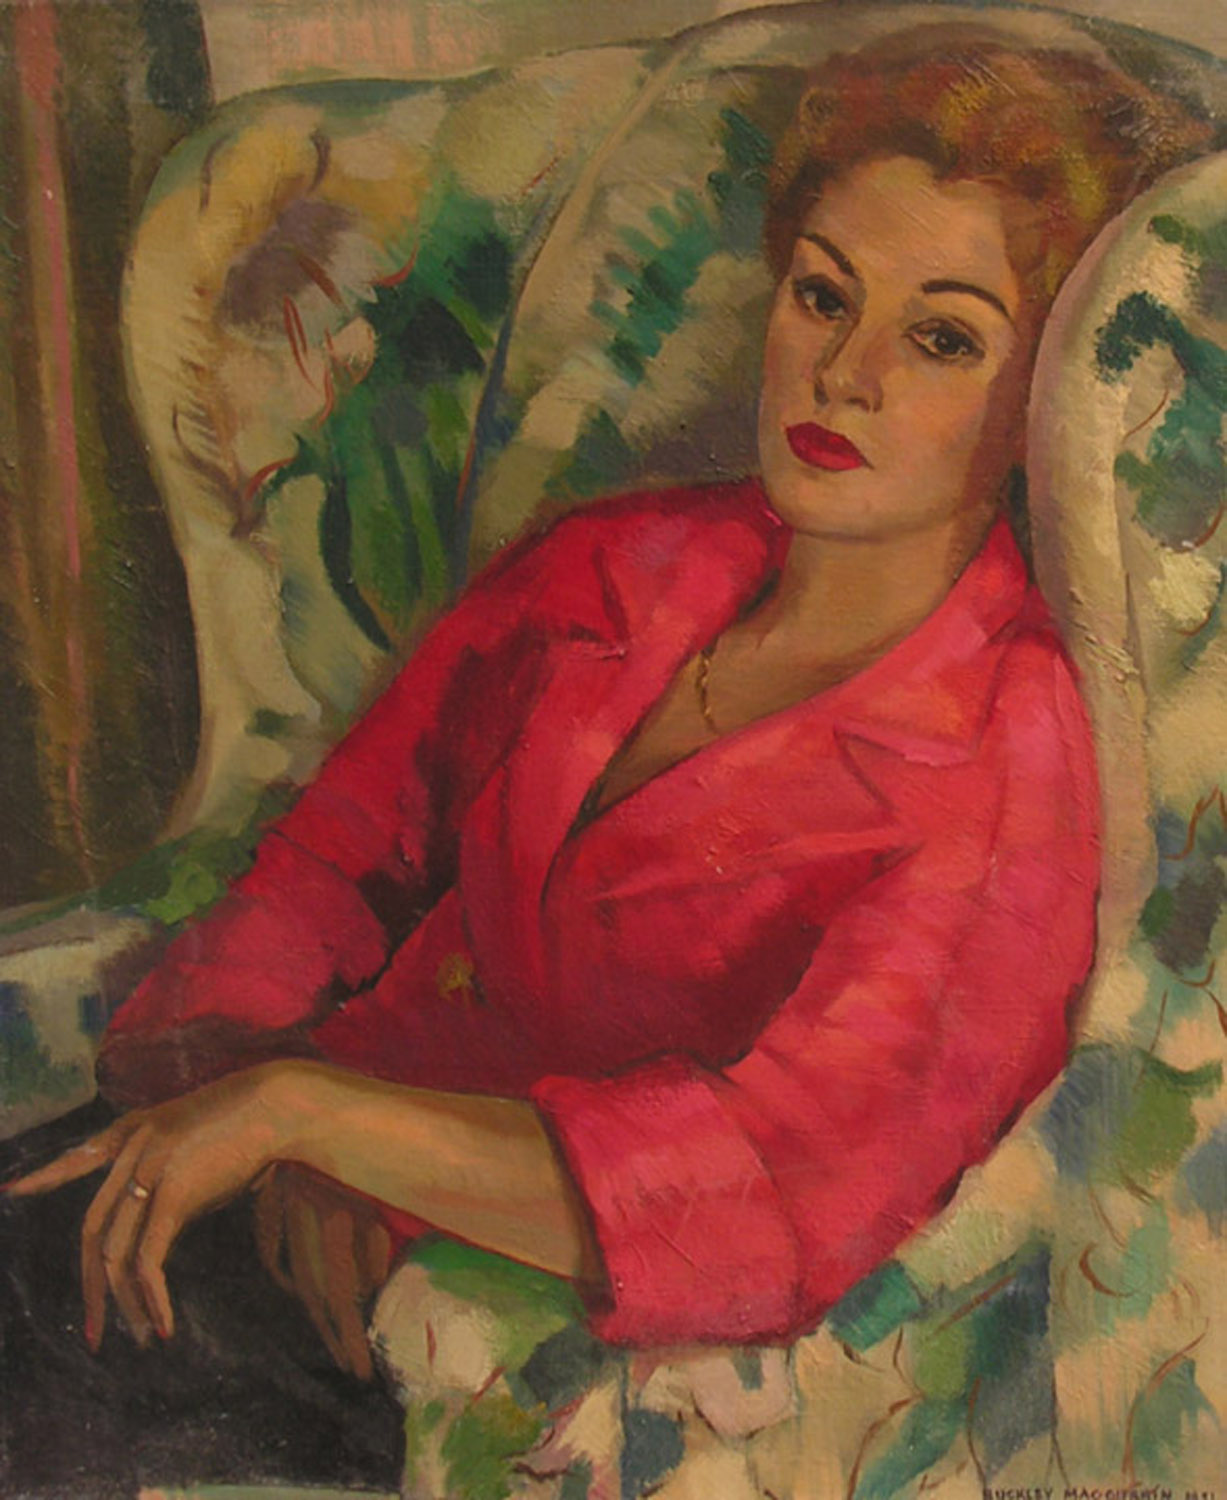 Buckley Macgurrin Art Deco Portrait Oil American  Modernism